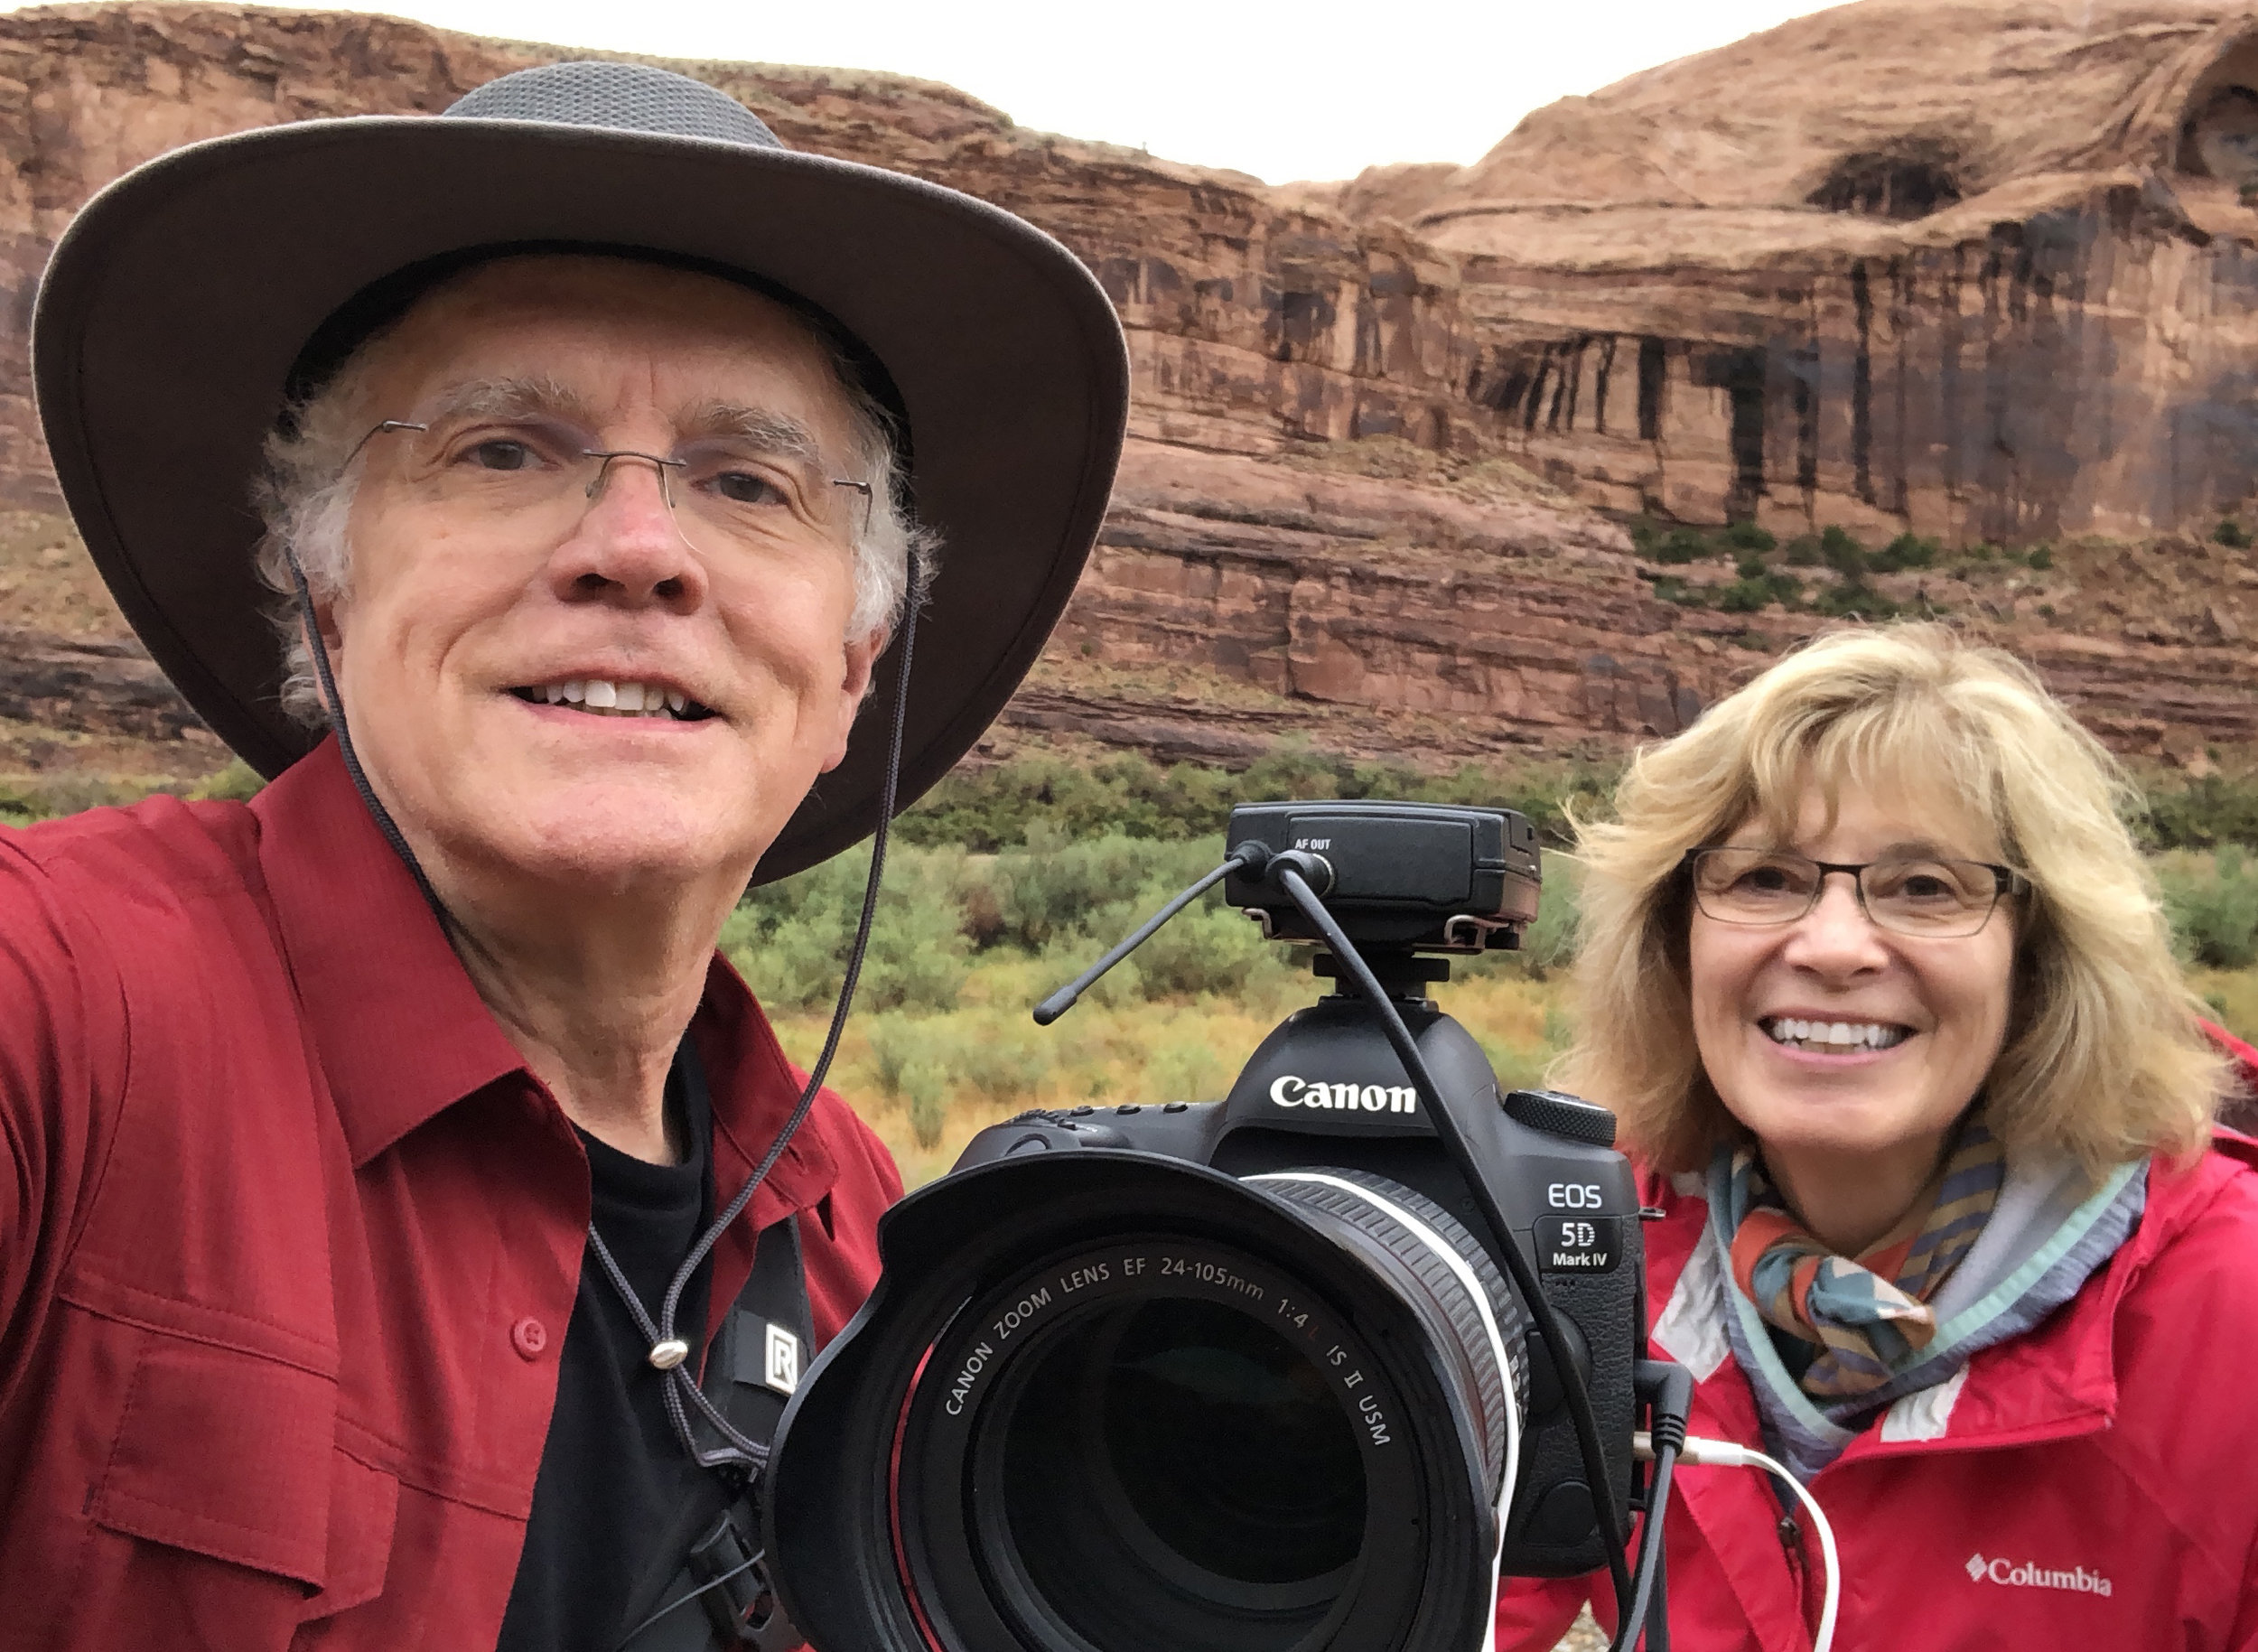 Rick and Susan Sammon Portrait.jpg